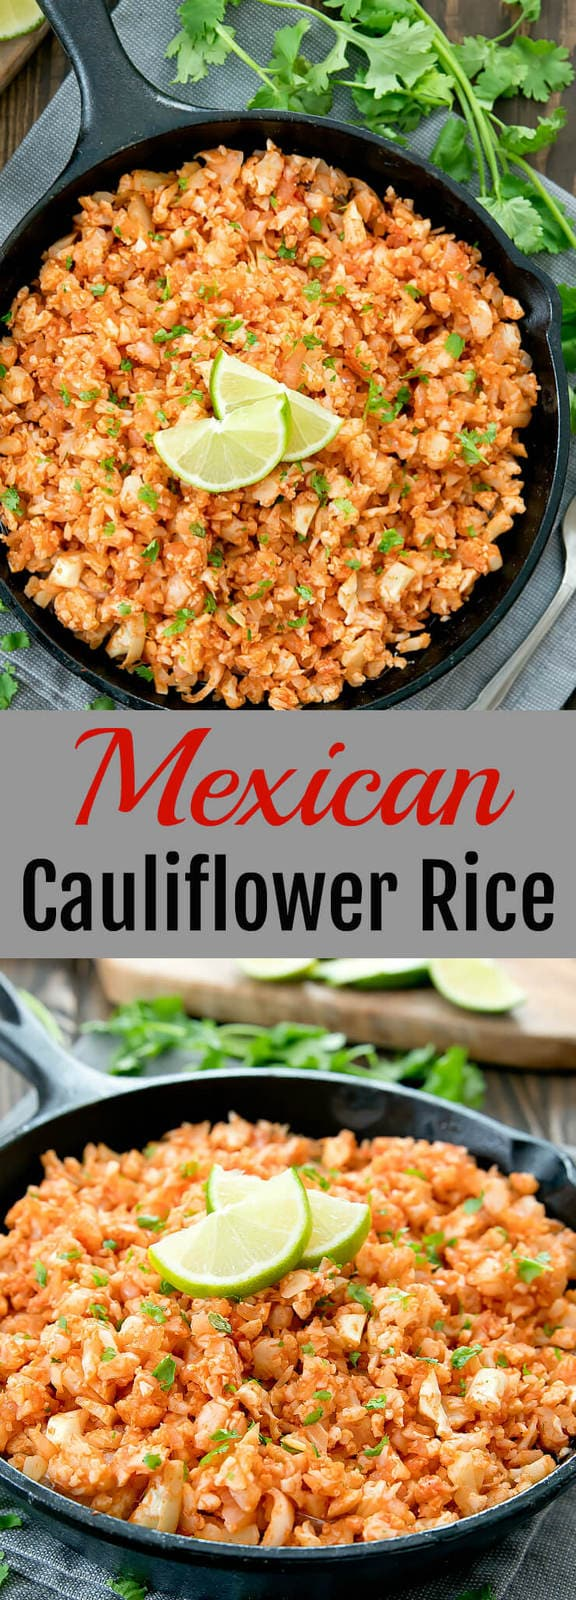 Mexican Cauliflower Rice. All the flavors of Mexican rice are incorporated into this easy, low carb, gluten free dish.